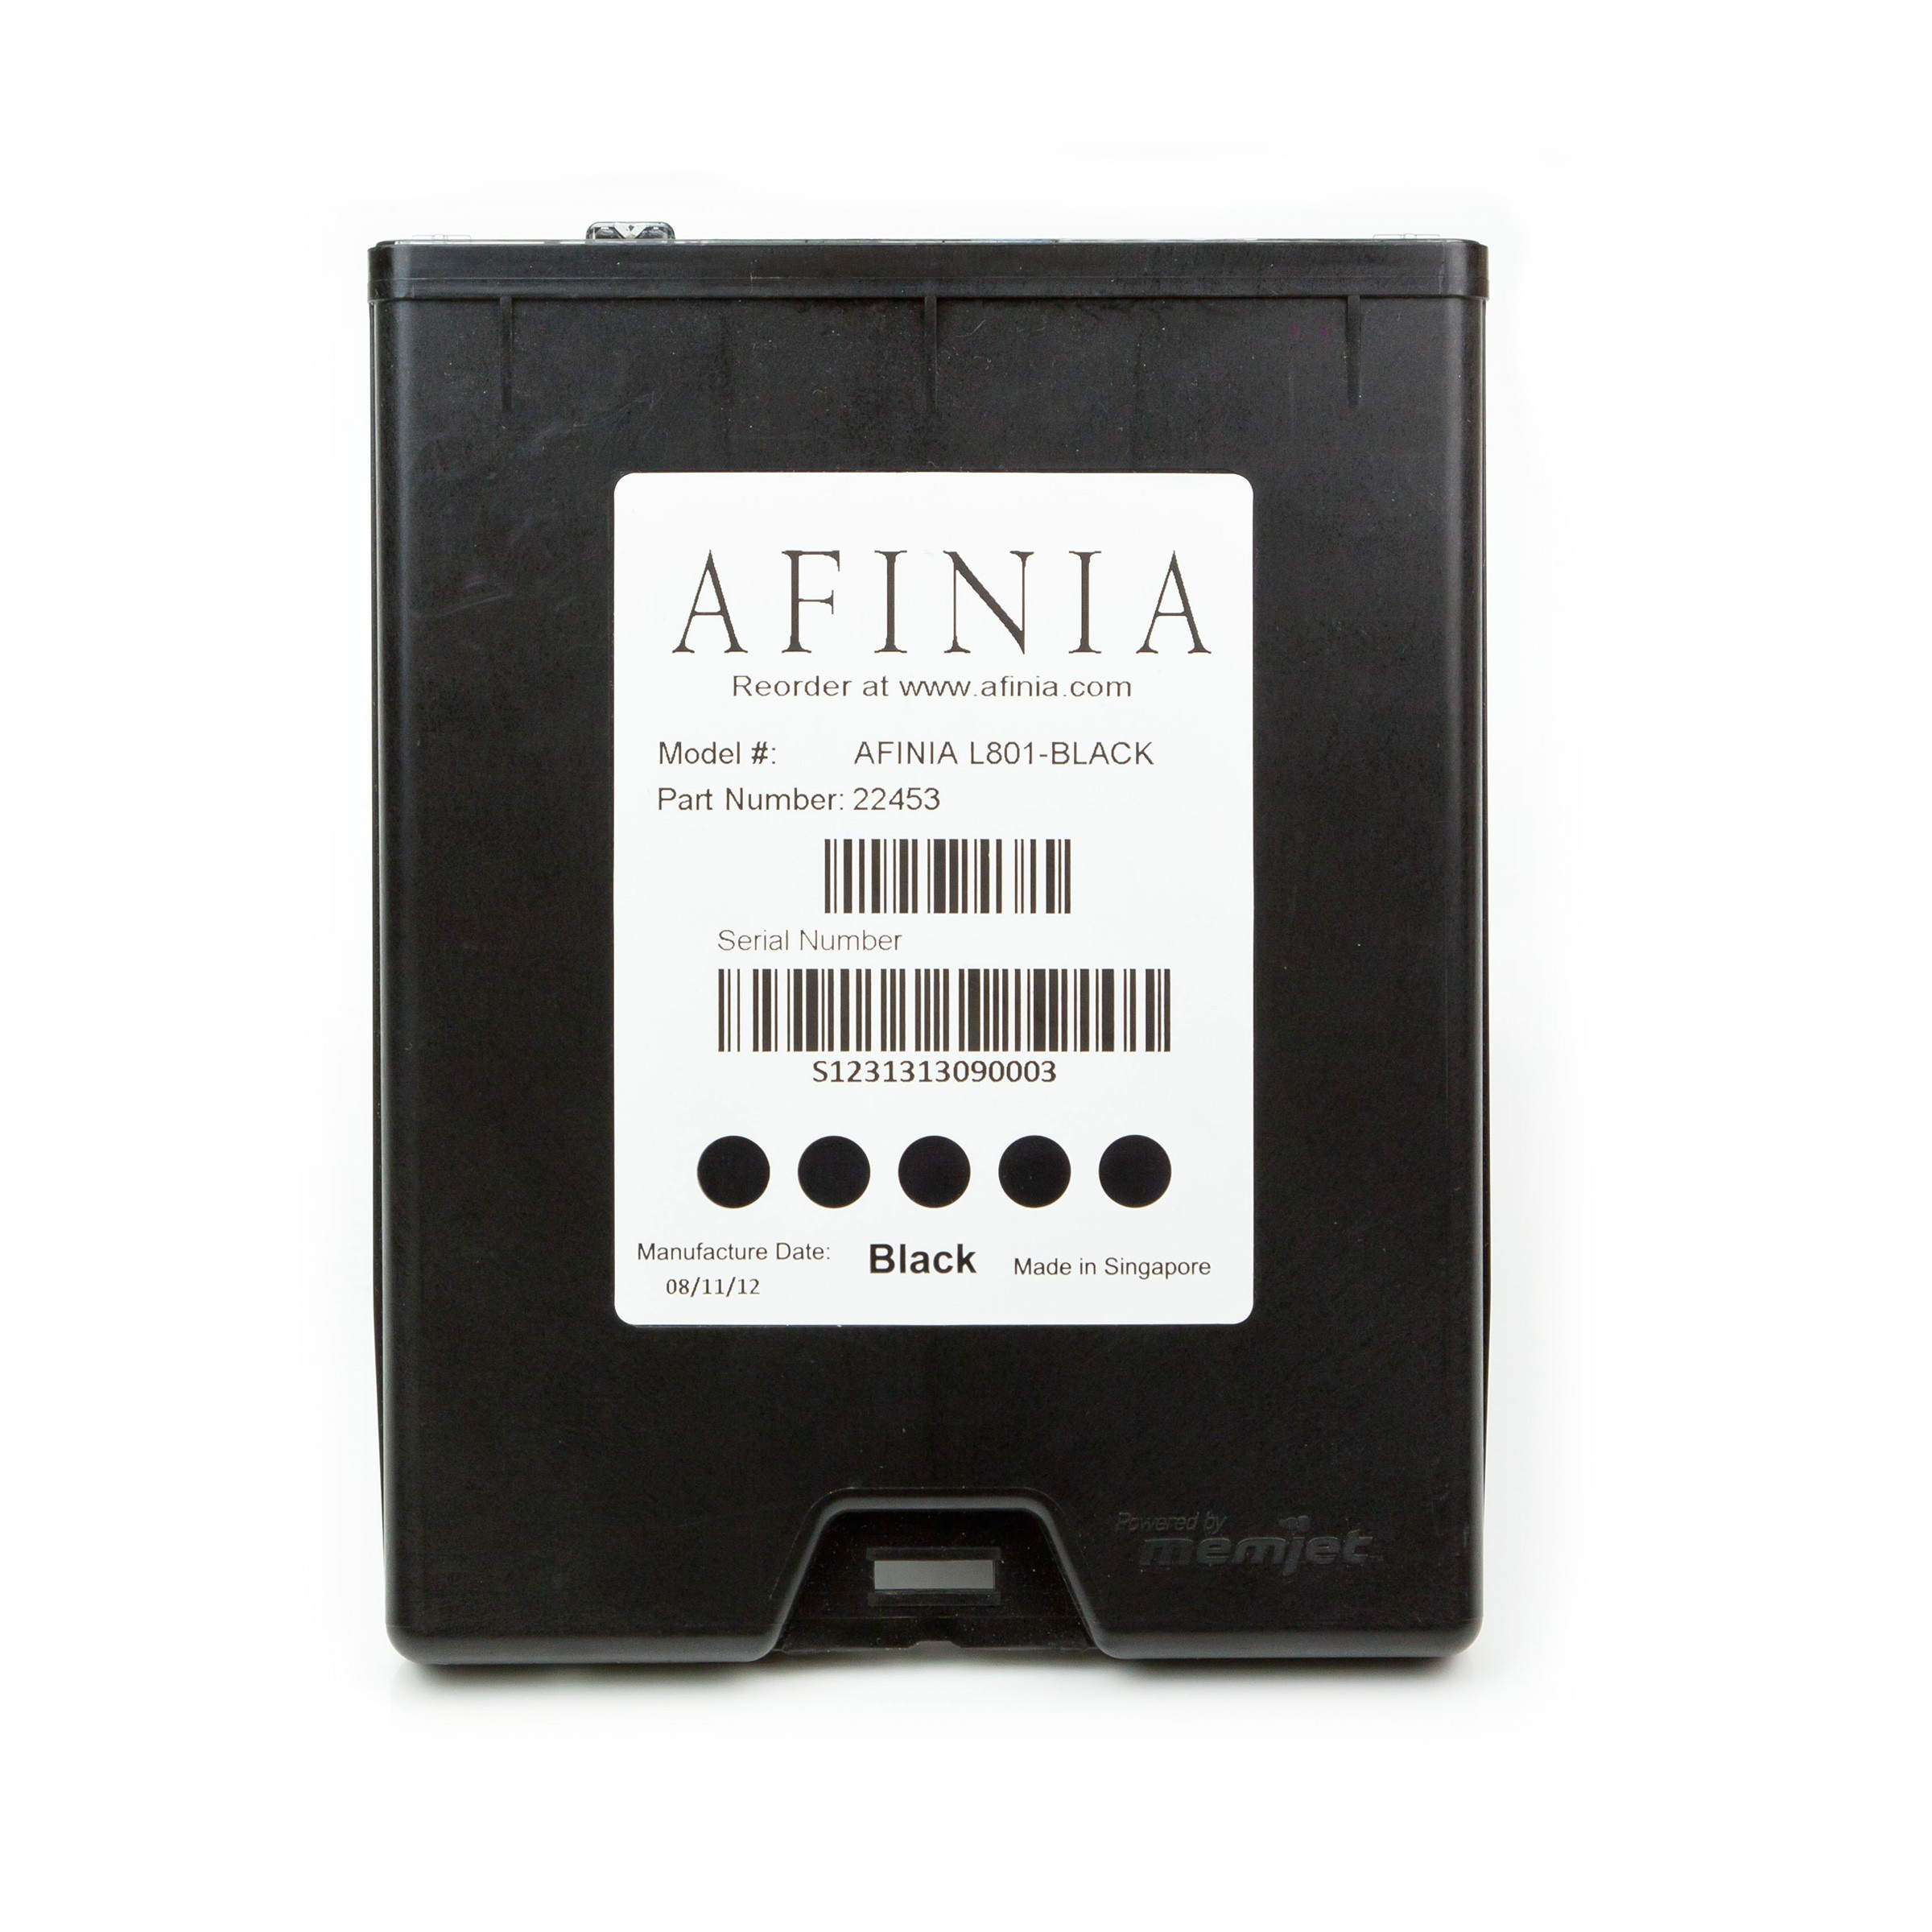 Afinia L801 Color Printer - BLACK Ink Cartridge